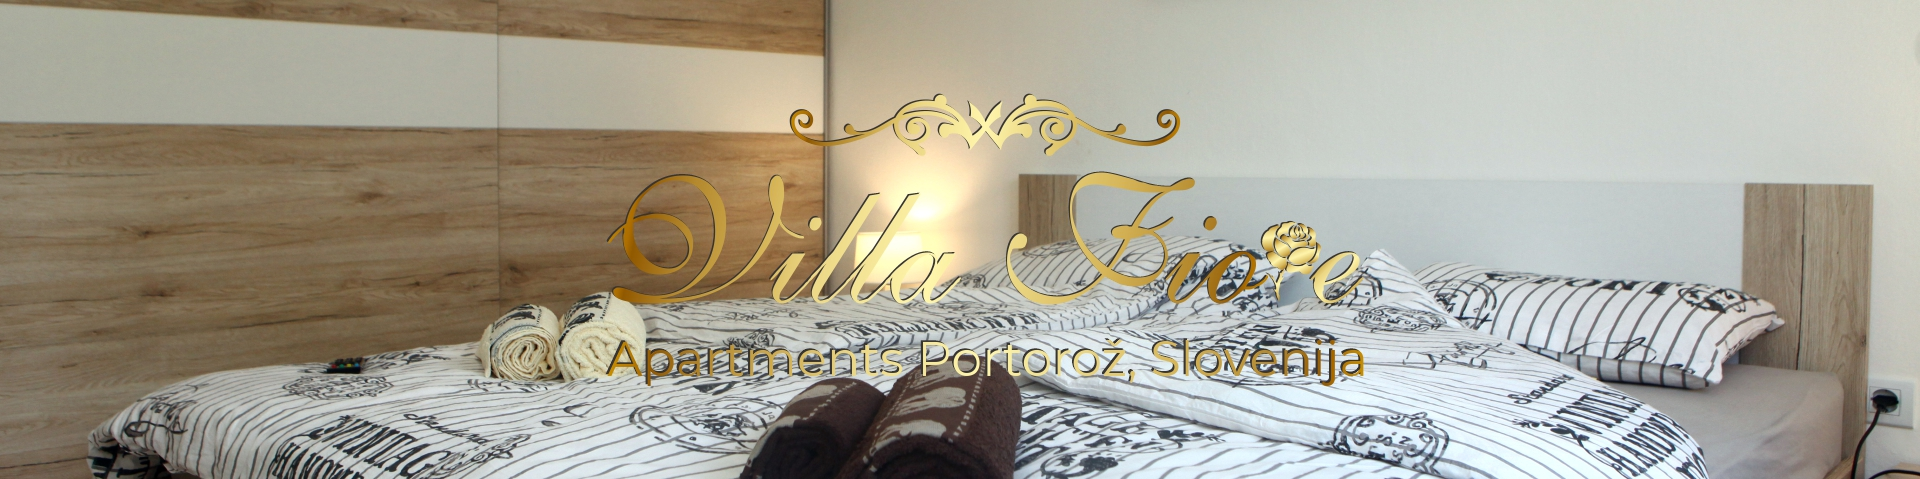 Apartments Portoroz